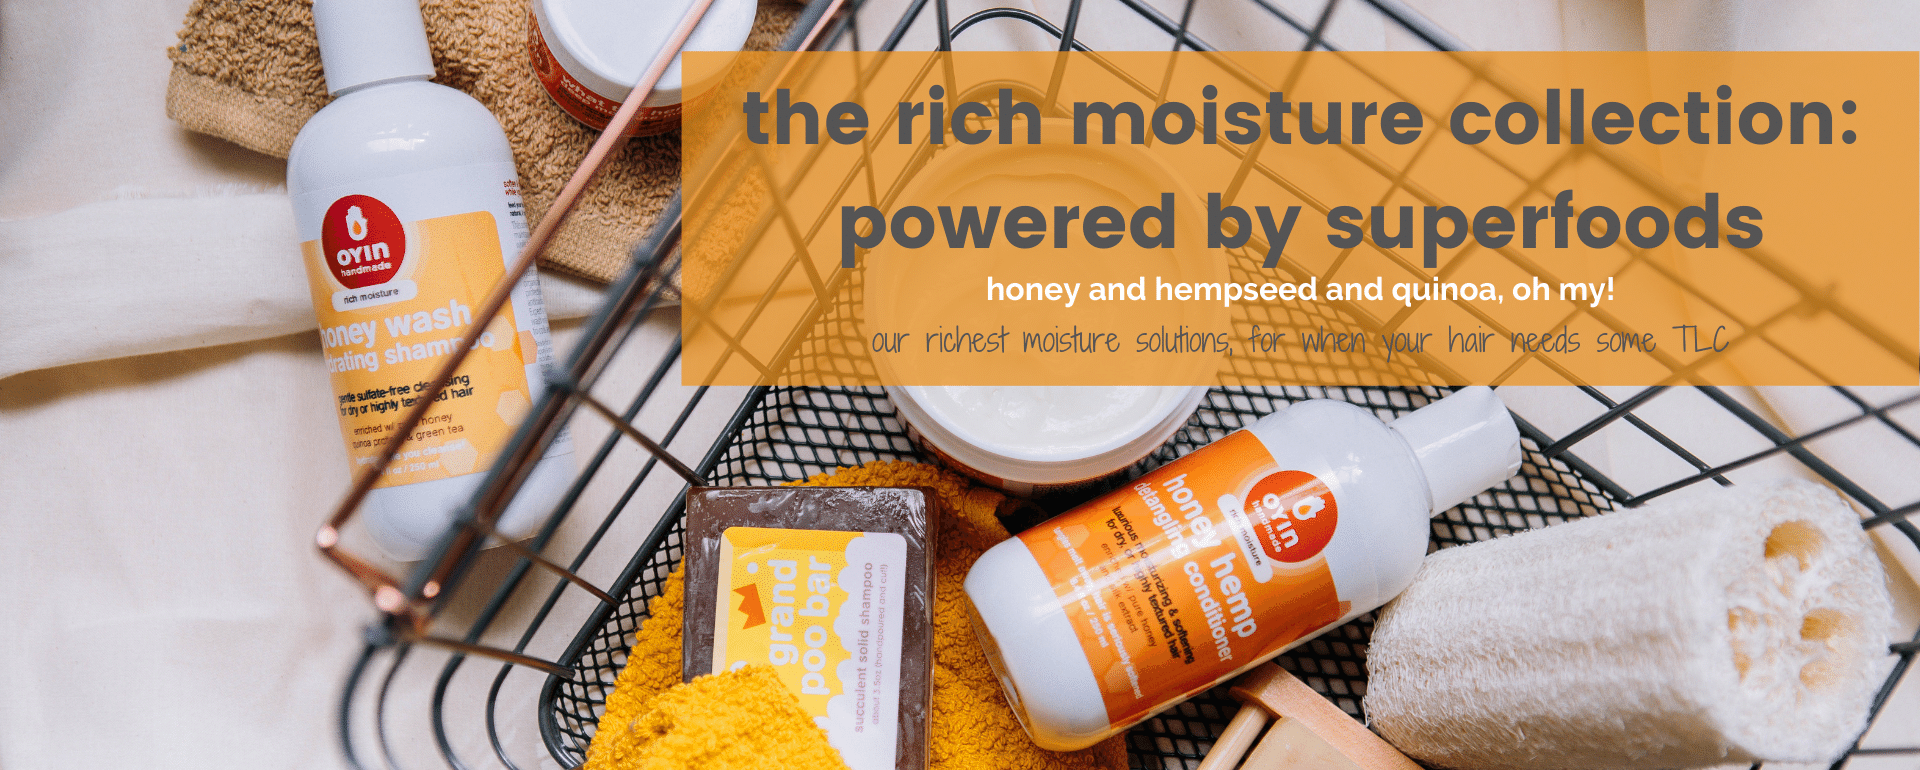 the rich moisture collection: powered by superfoods. honey and hempseed and quinoa. oh my! our richest moisture collection